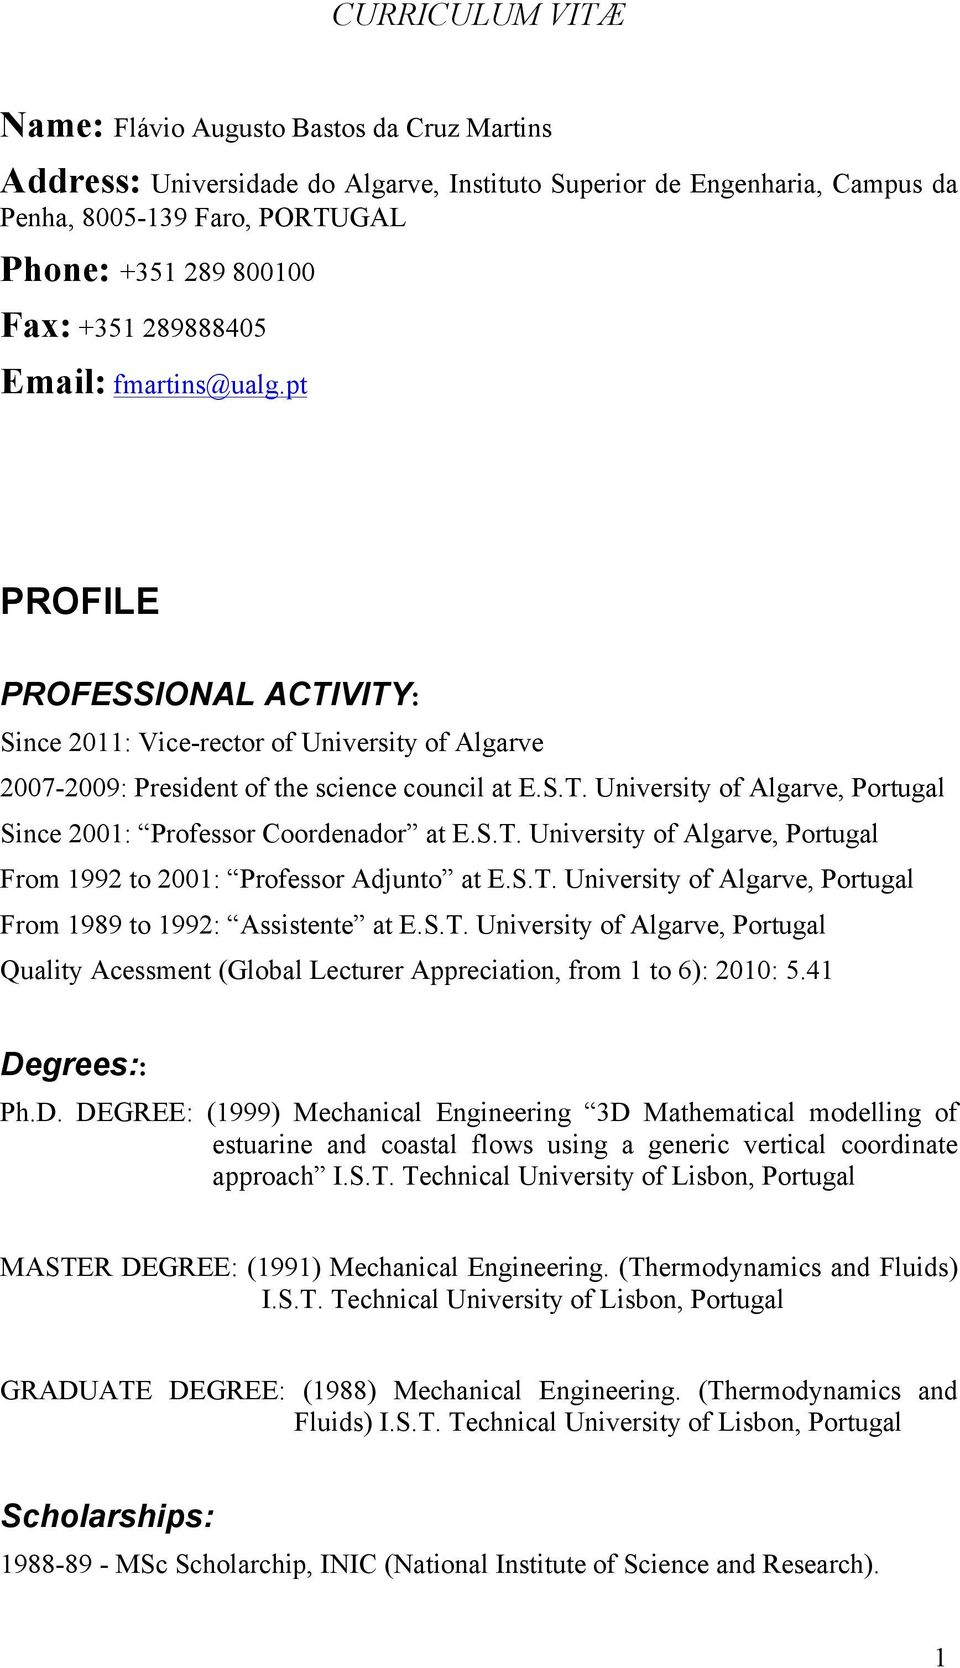 S.T. University of Algarve, Portugal From 1992 to 2001: Professor Adjunto at E.S.T. University of Algarve, Portugal From 1989 to 1992: Assistente at E.S.T. University of Algarve, Portugal Quality Acessment (Global Lecturer Appreciation, from 1 to 6): 2010: 5.